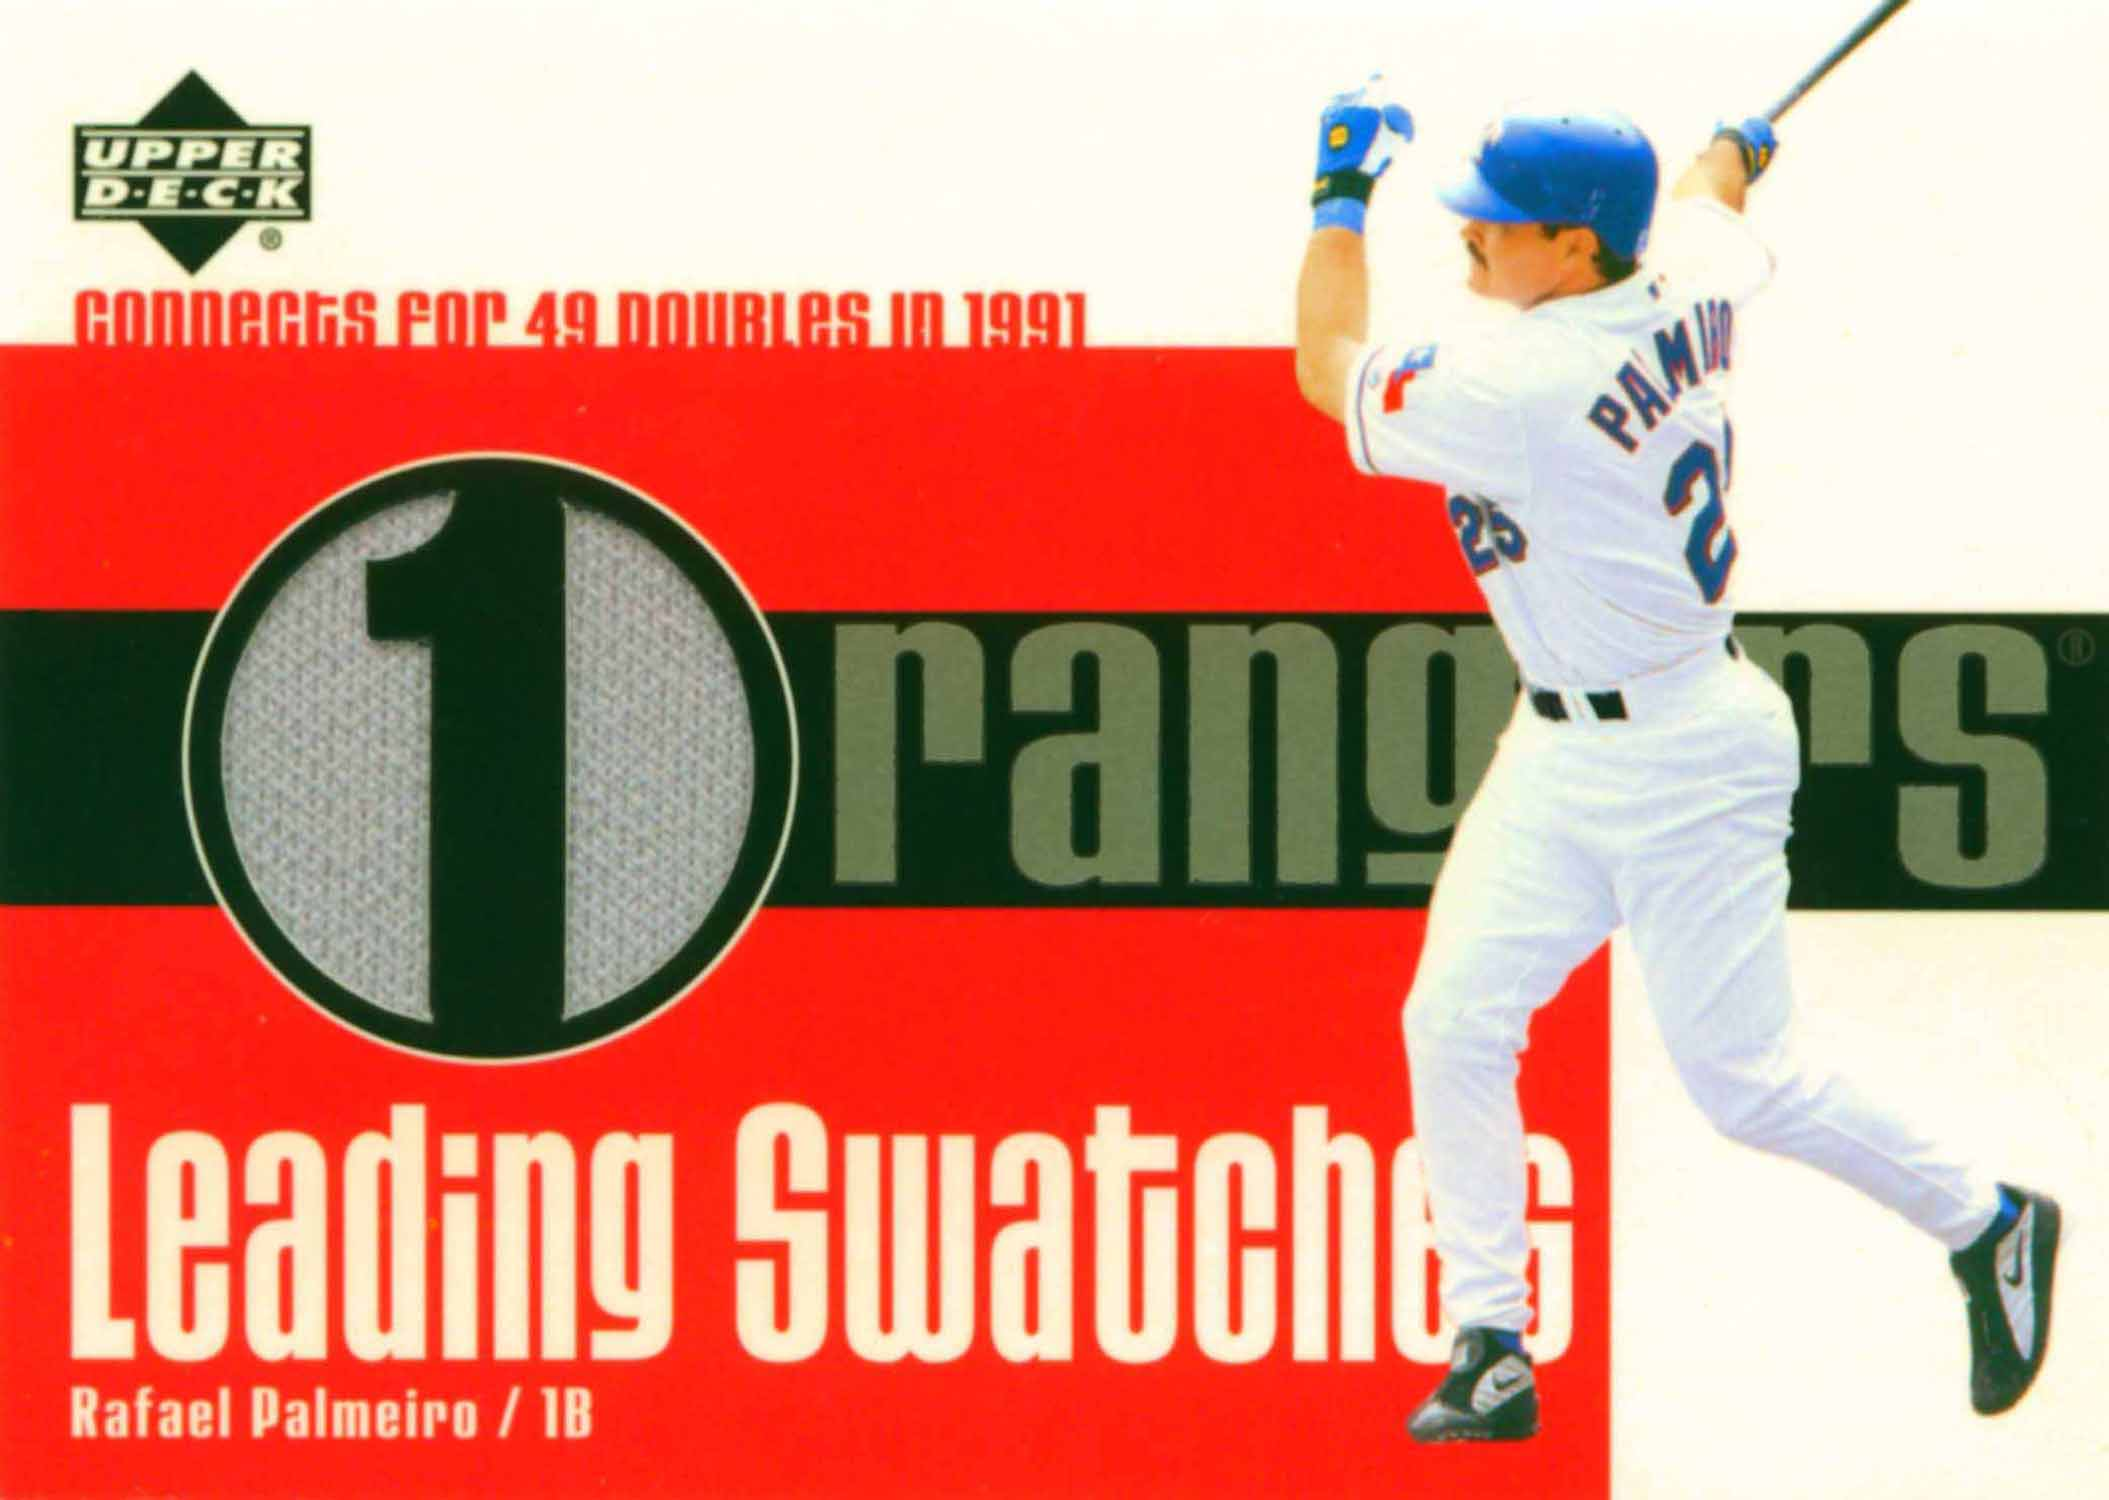 2003 Upper Deck Leading Swatches